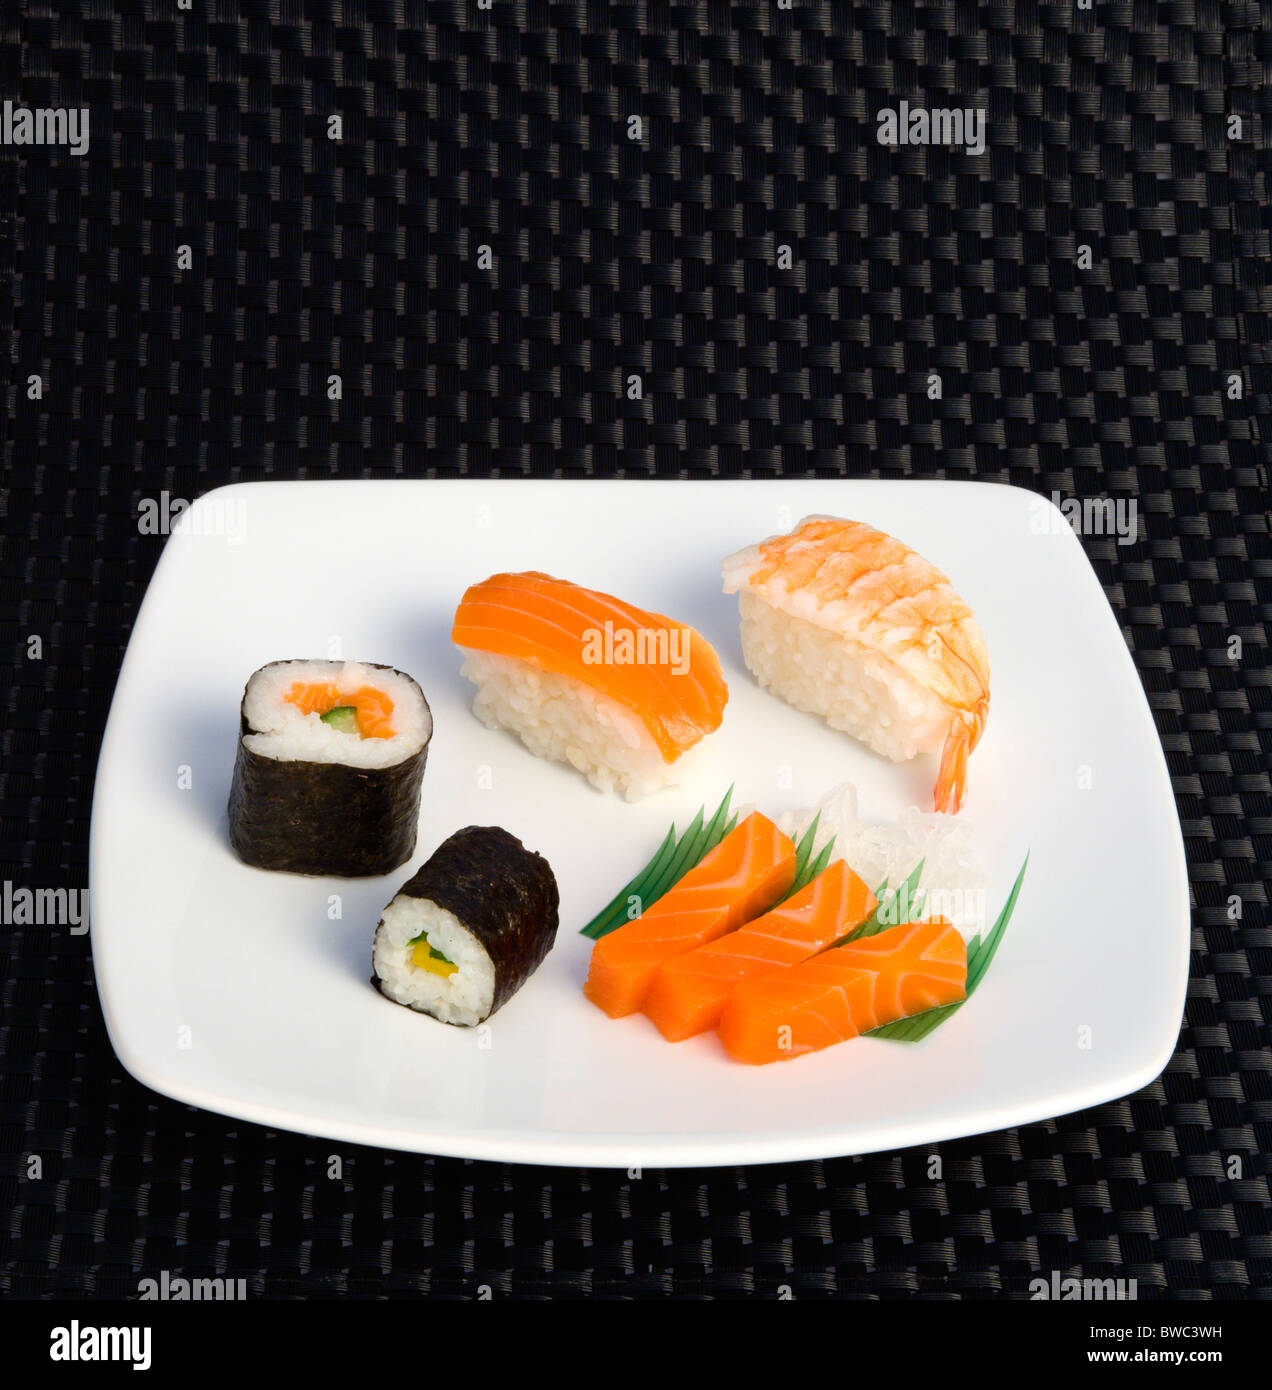 Food, Sushi, Meal, Sushi plate with rice wrapped in seaweed and seafood and fish selection. - Stock Image